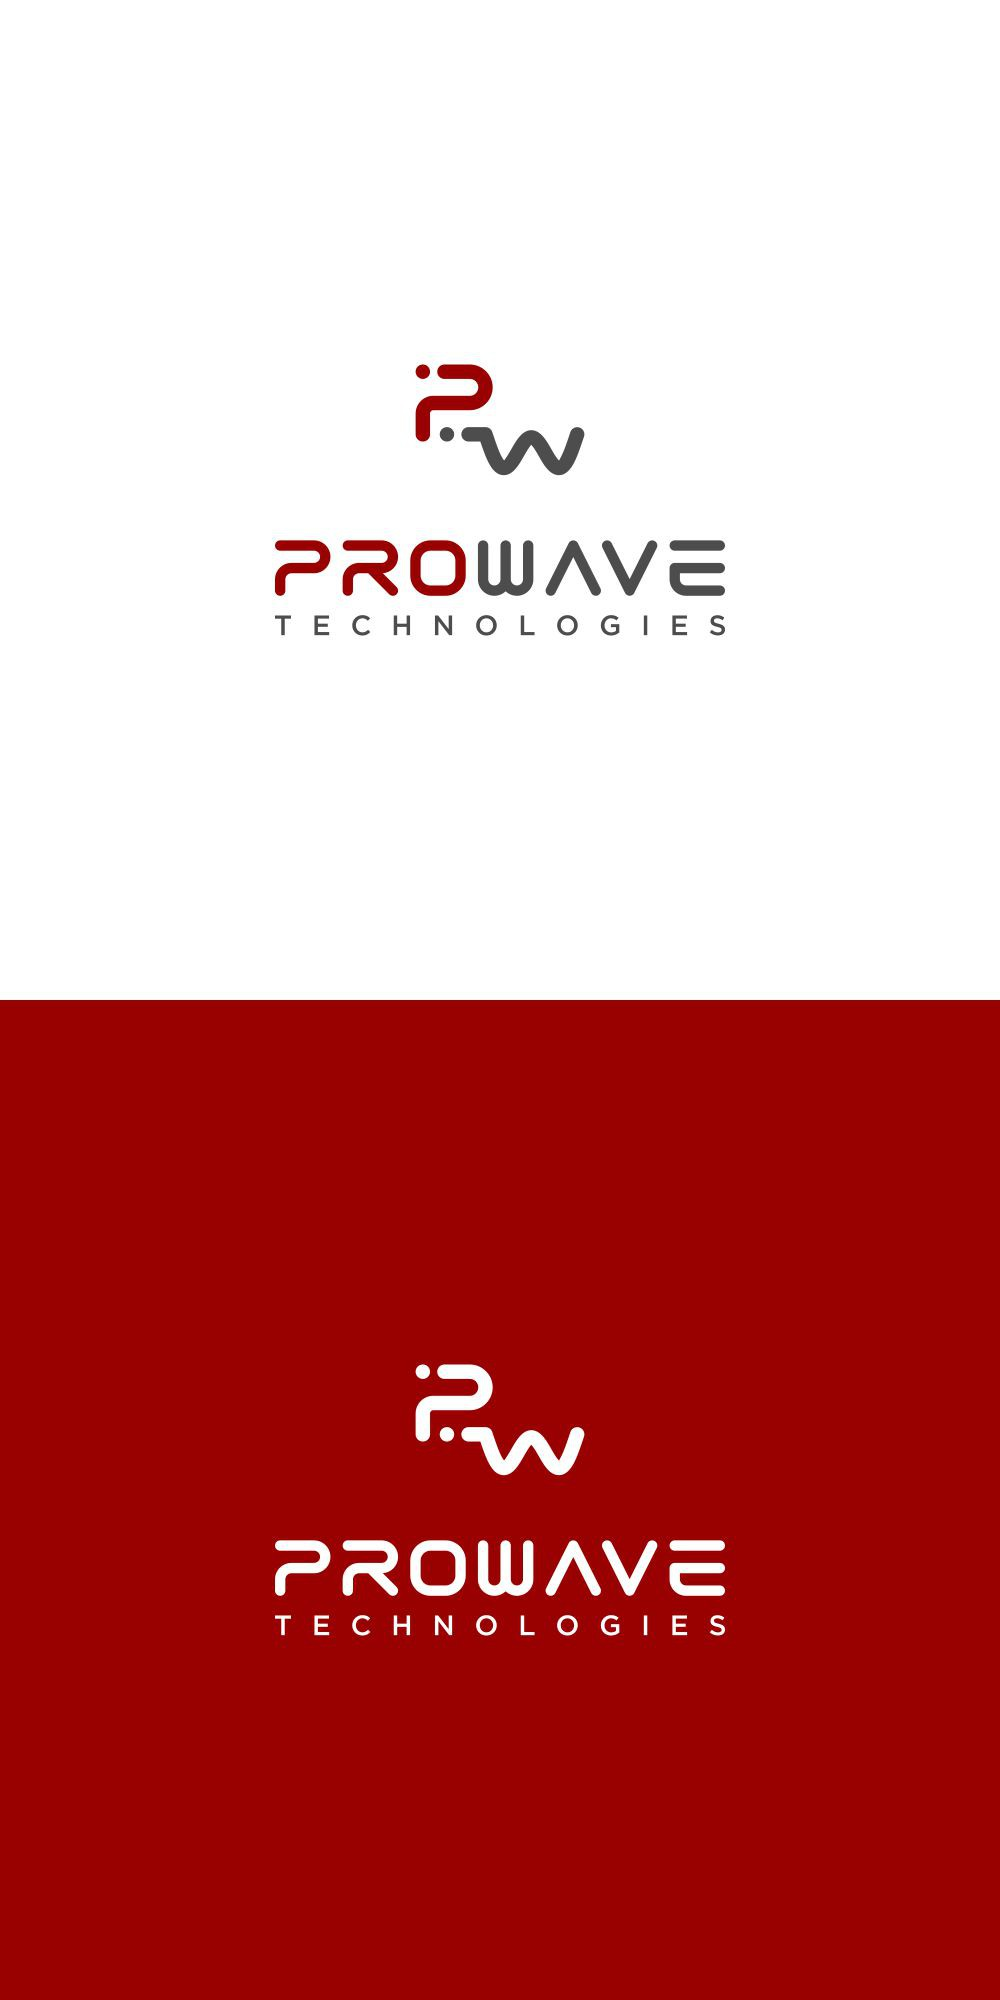 Create an AWESOME logo for Prowave Technologies!!